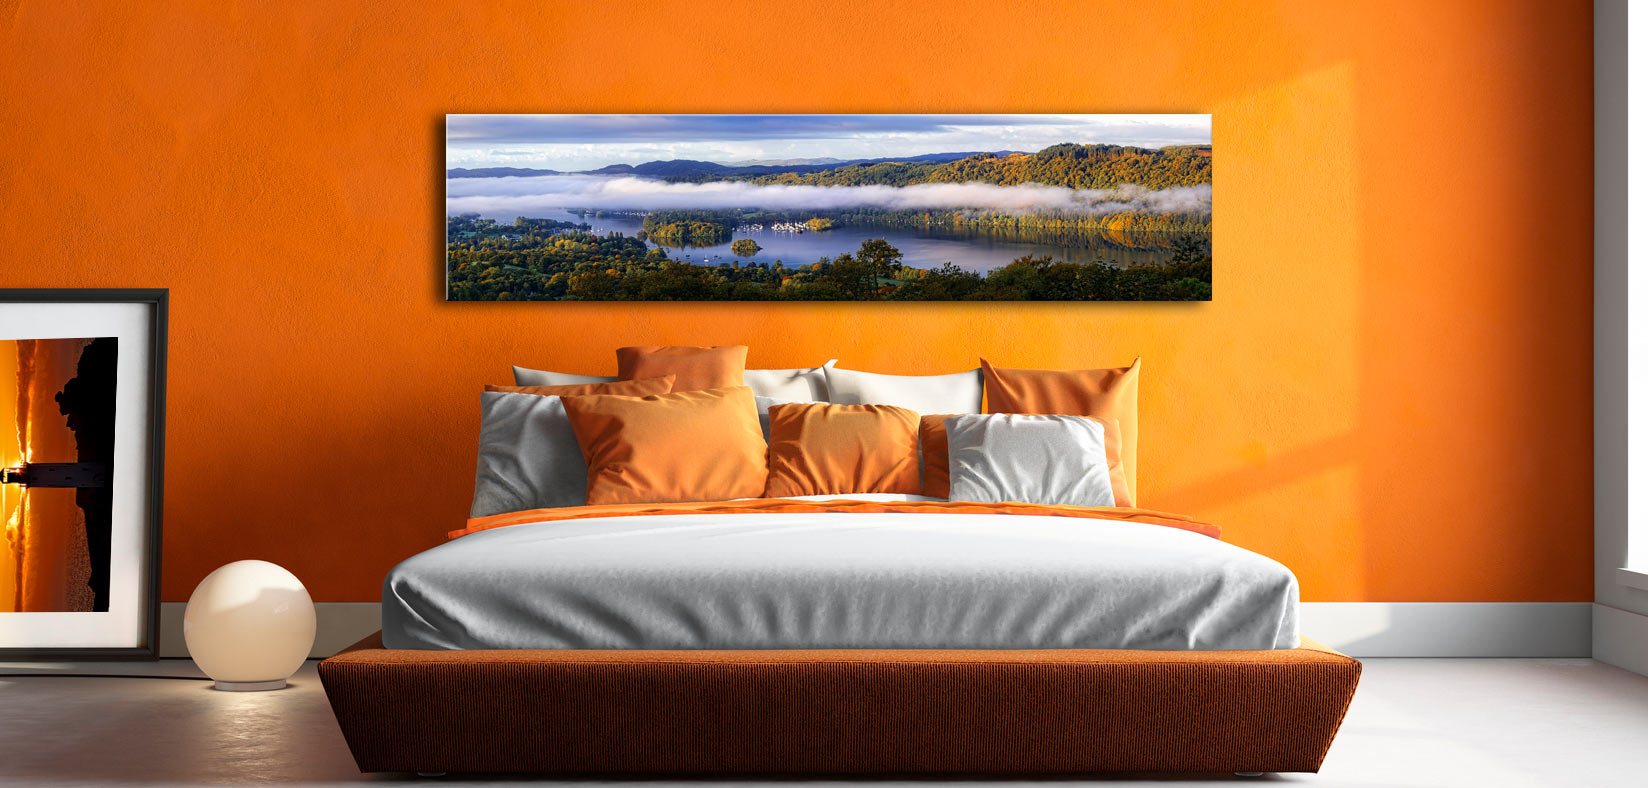 Bowness On Windermere Morning Mists - Lake District Canvas on Wall